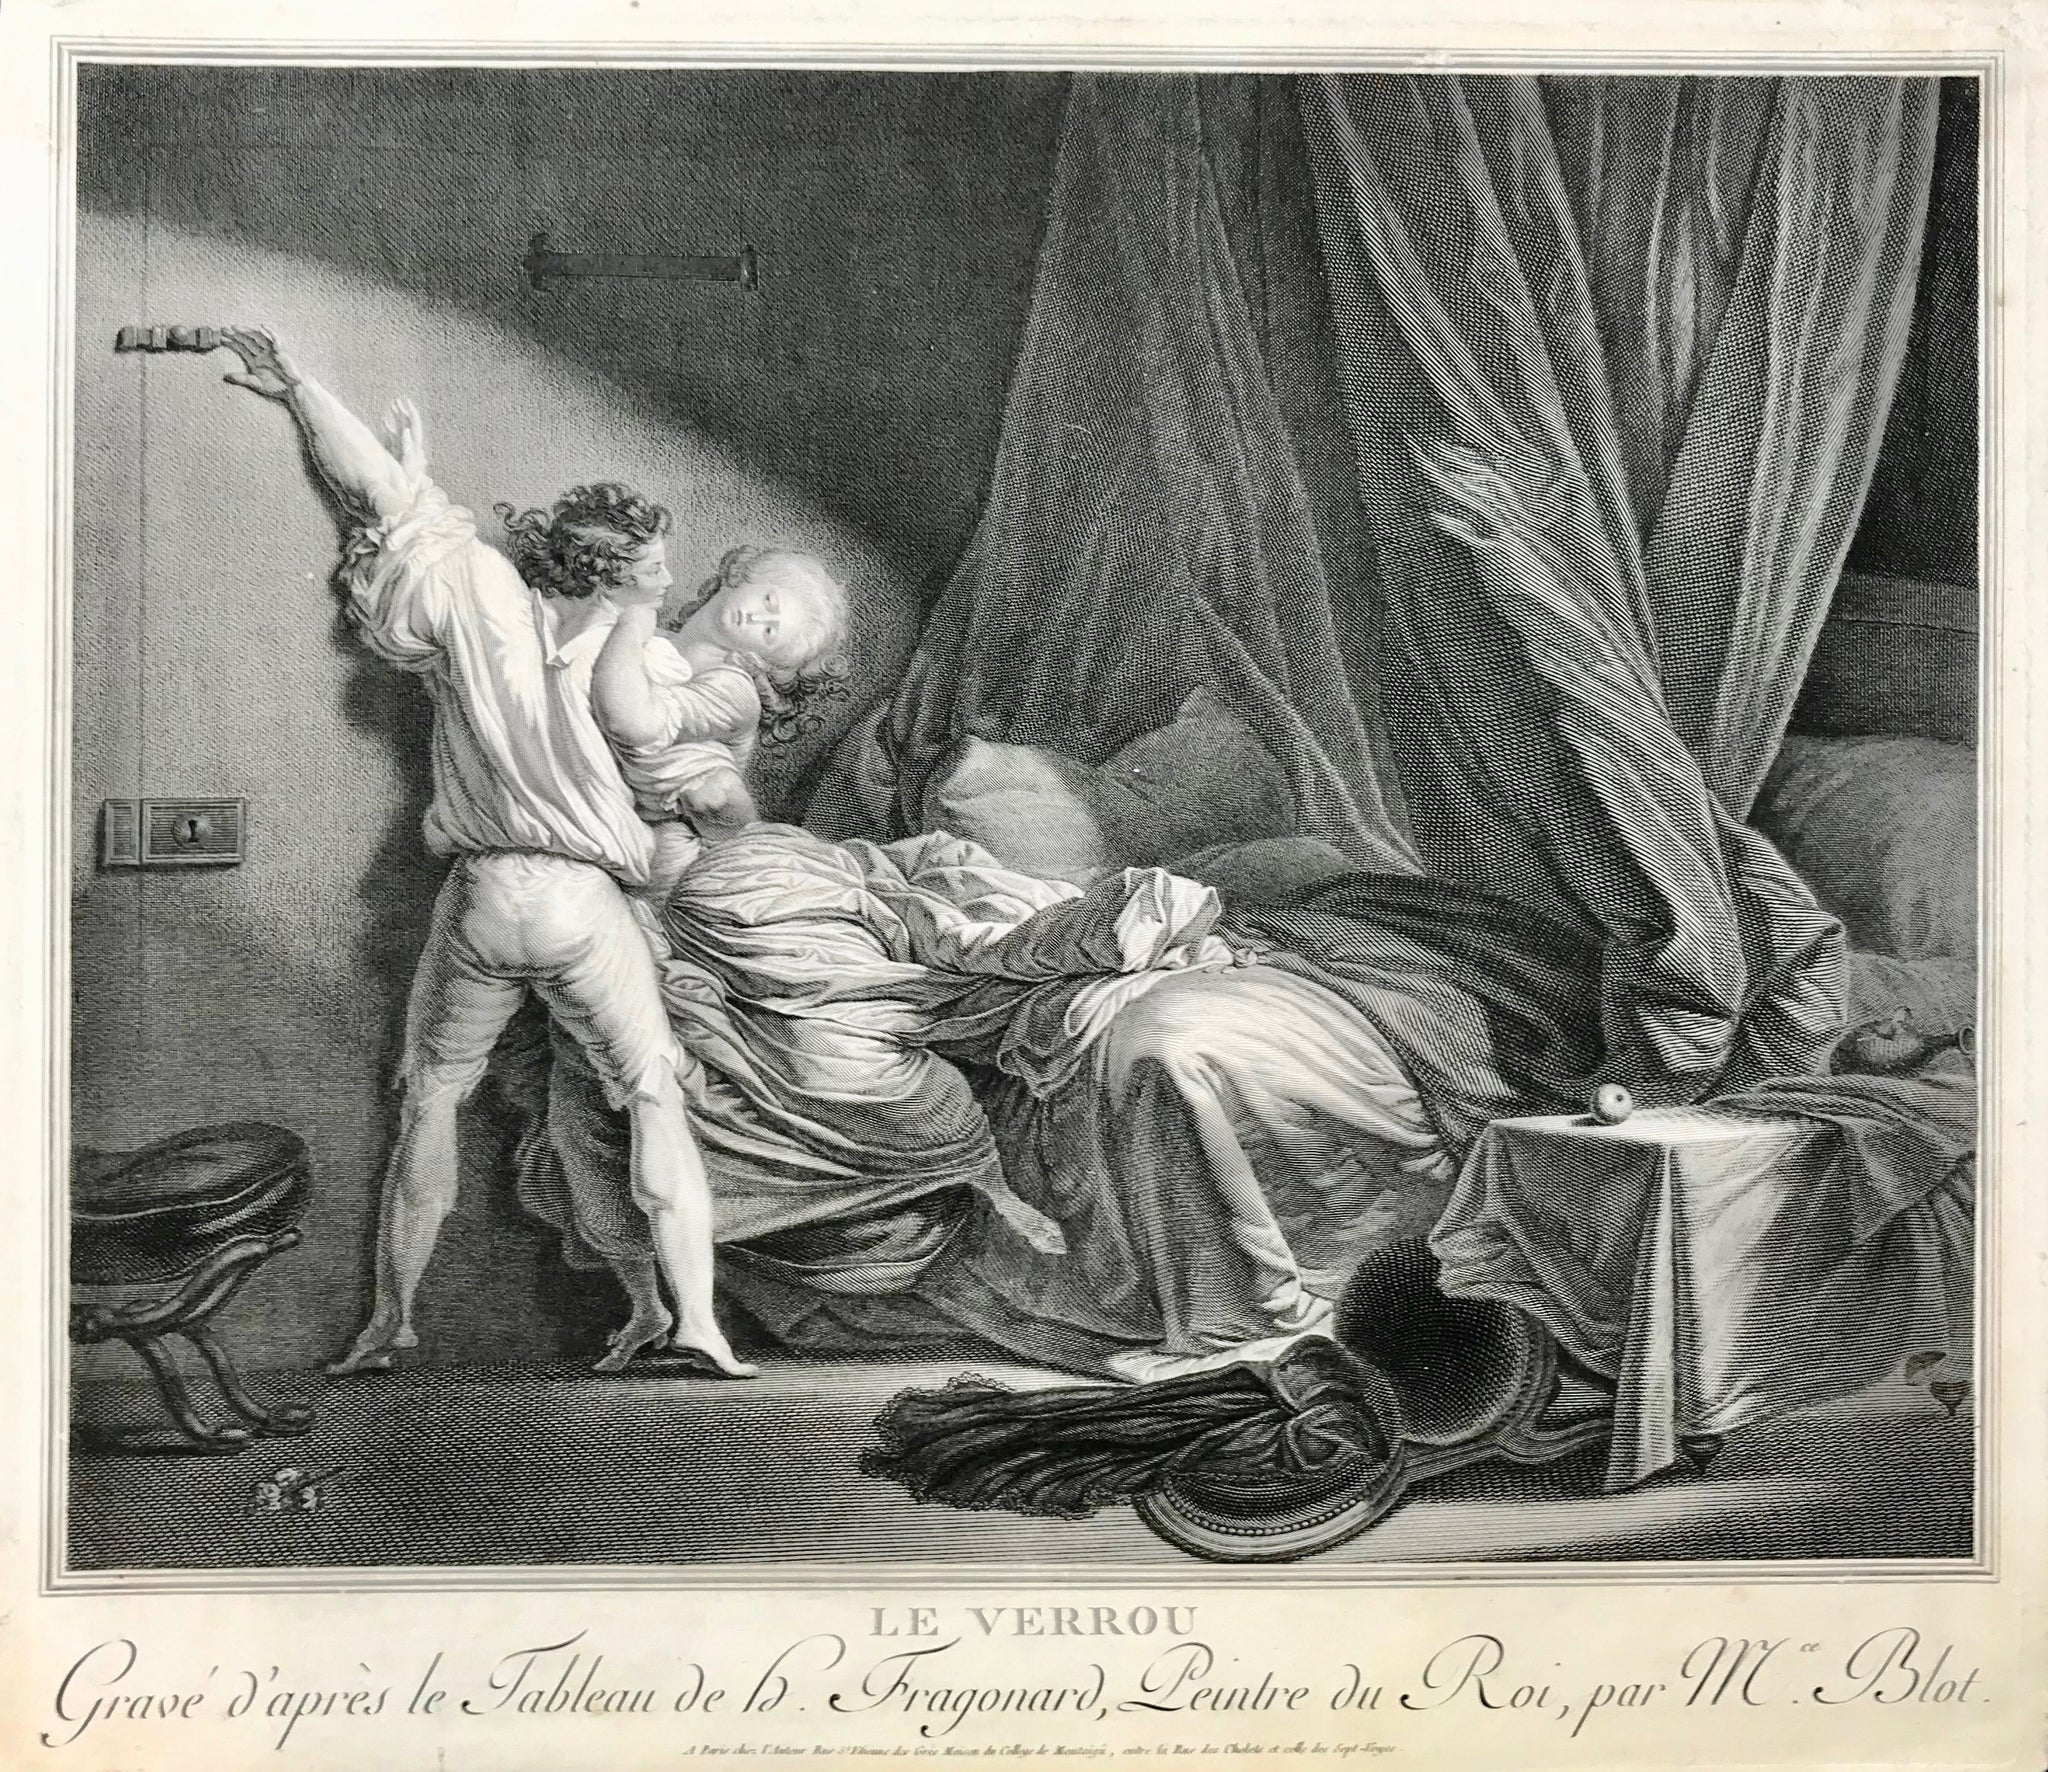 Le Verrou (the bolt)  Copper etching by Maurice Blot (1753 - 1818) after the painting by Jean-Honoré Fragonard (1732 - 1806). Paris, 1784  A young man prevents the escape of his mistress by pushing the door bolt shut.